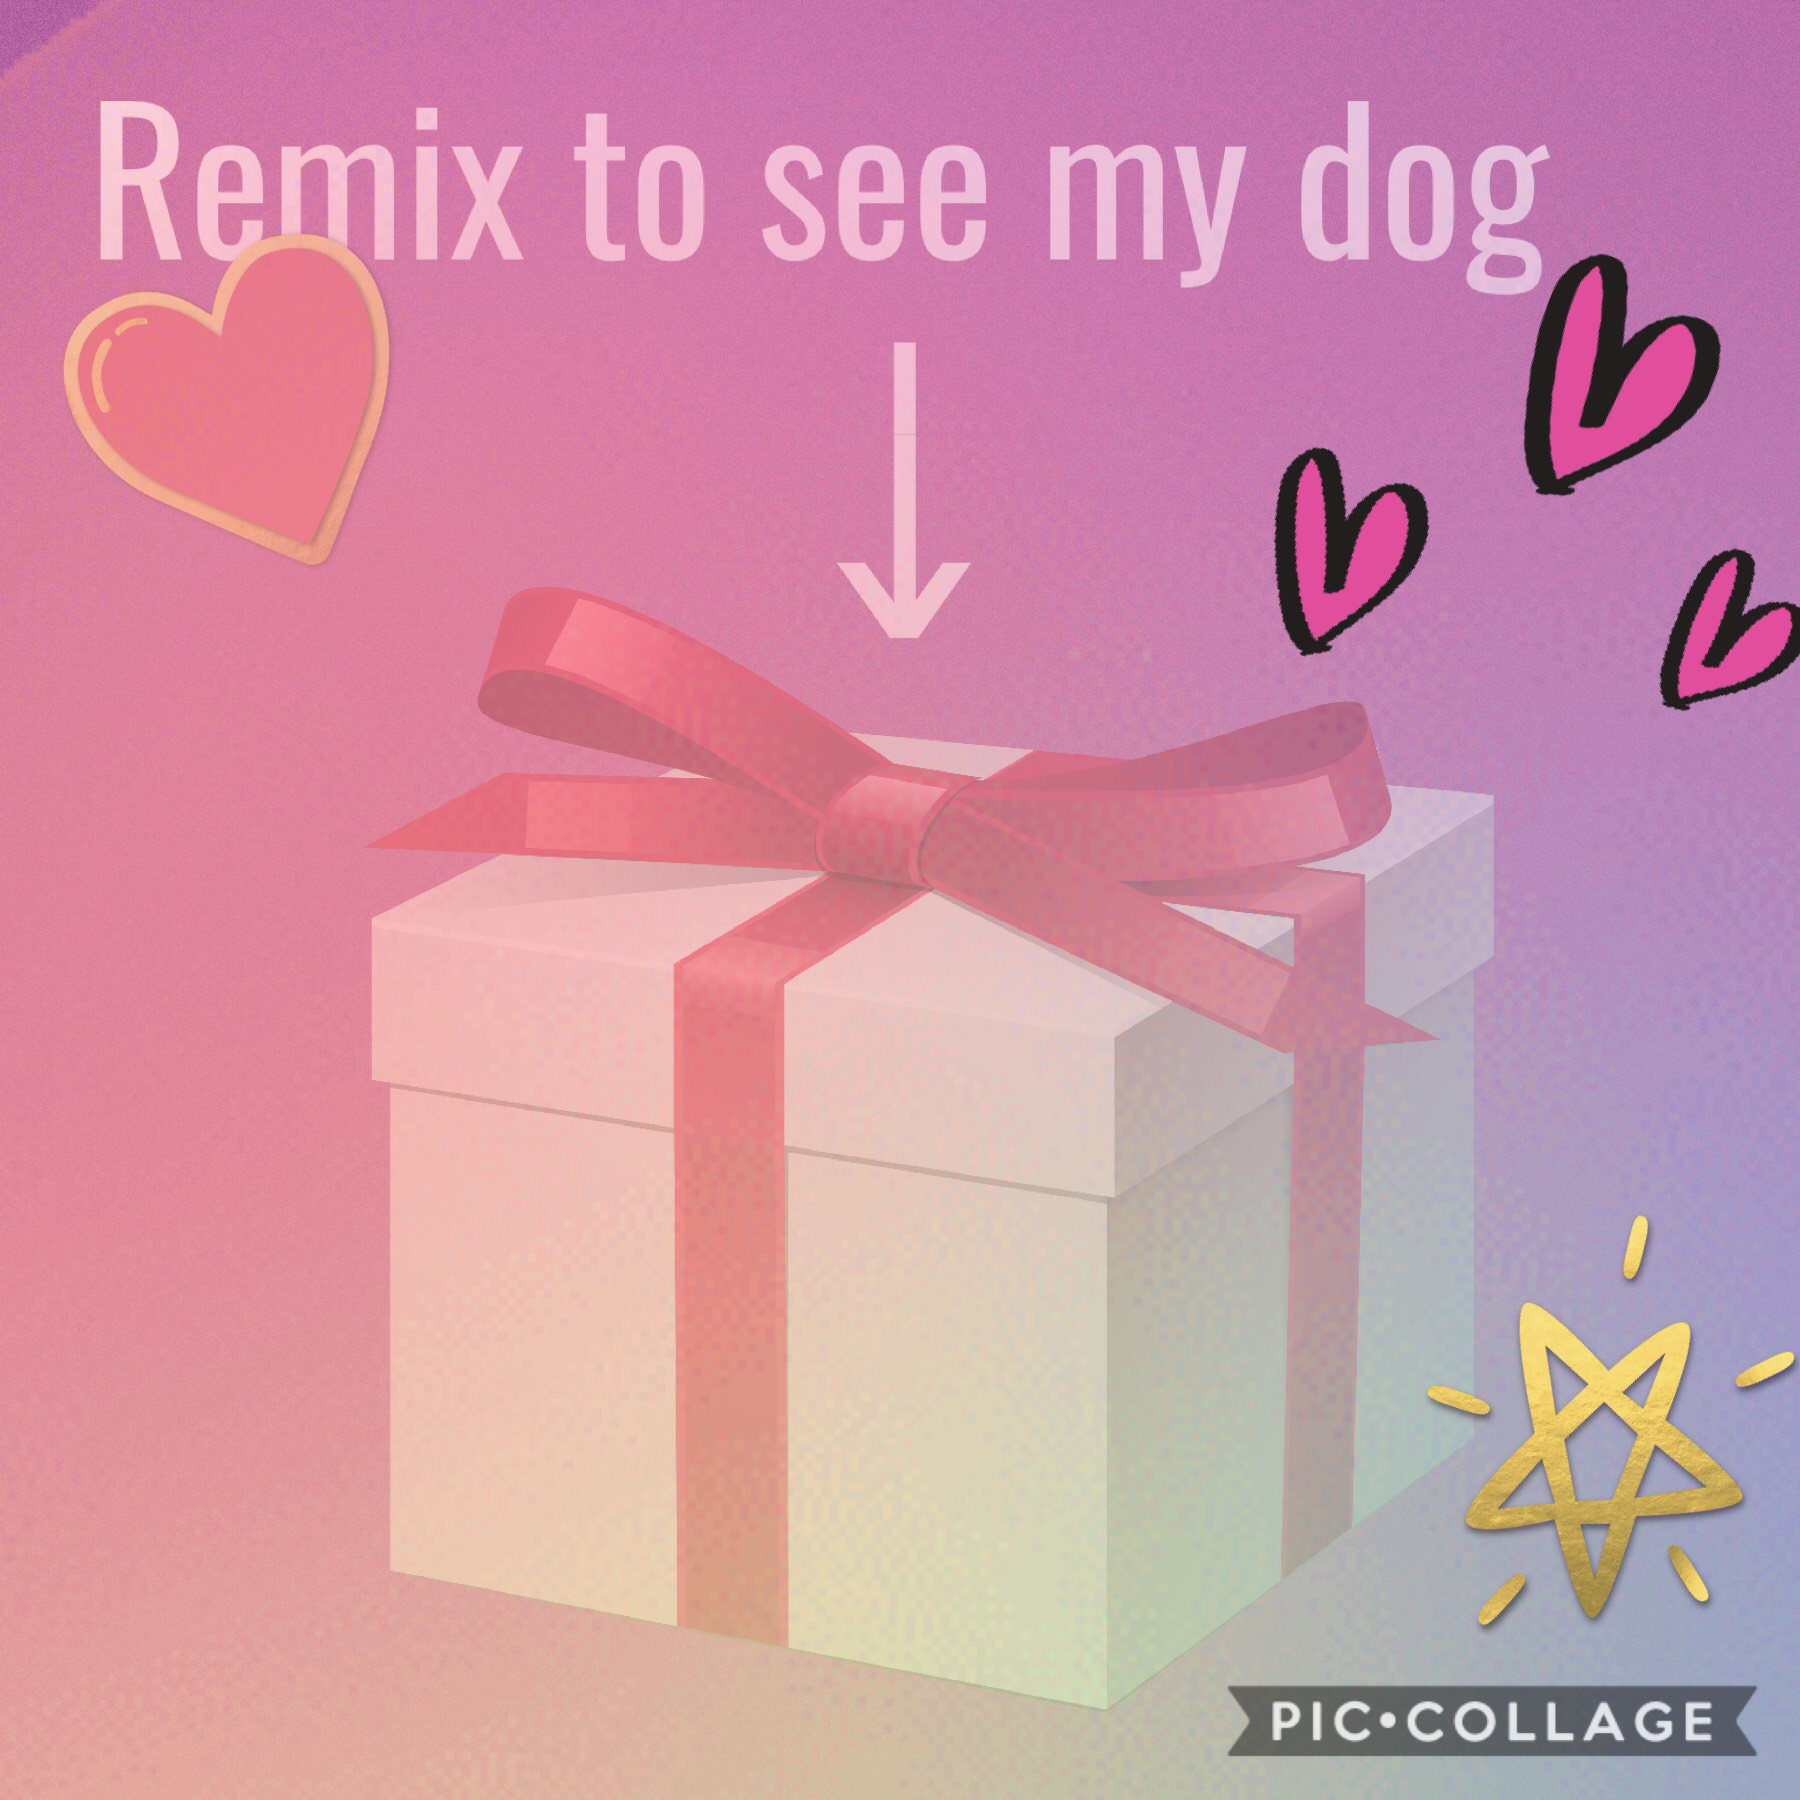 Remix to see my dog!